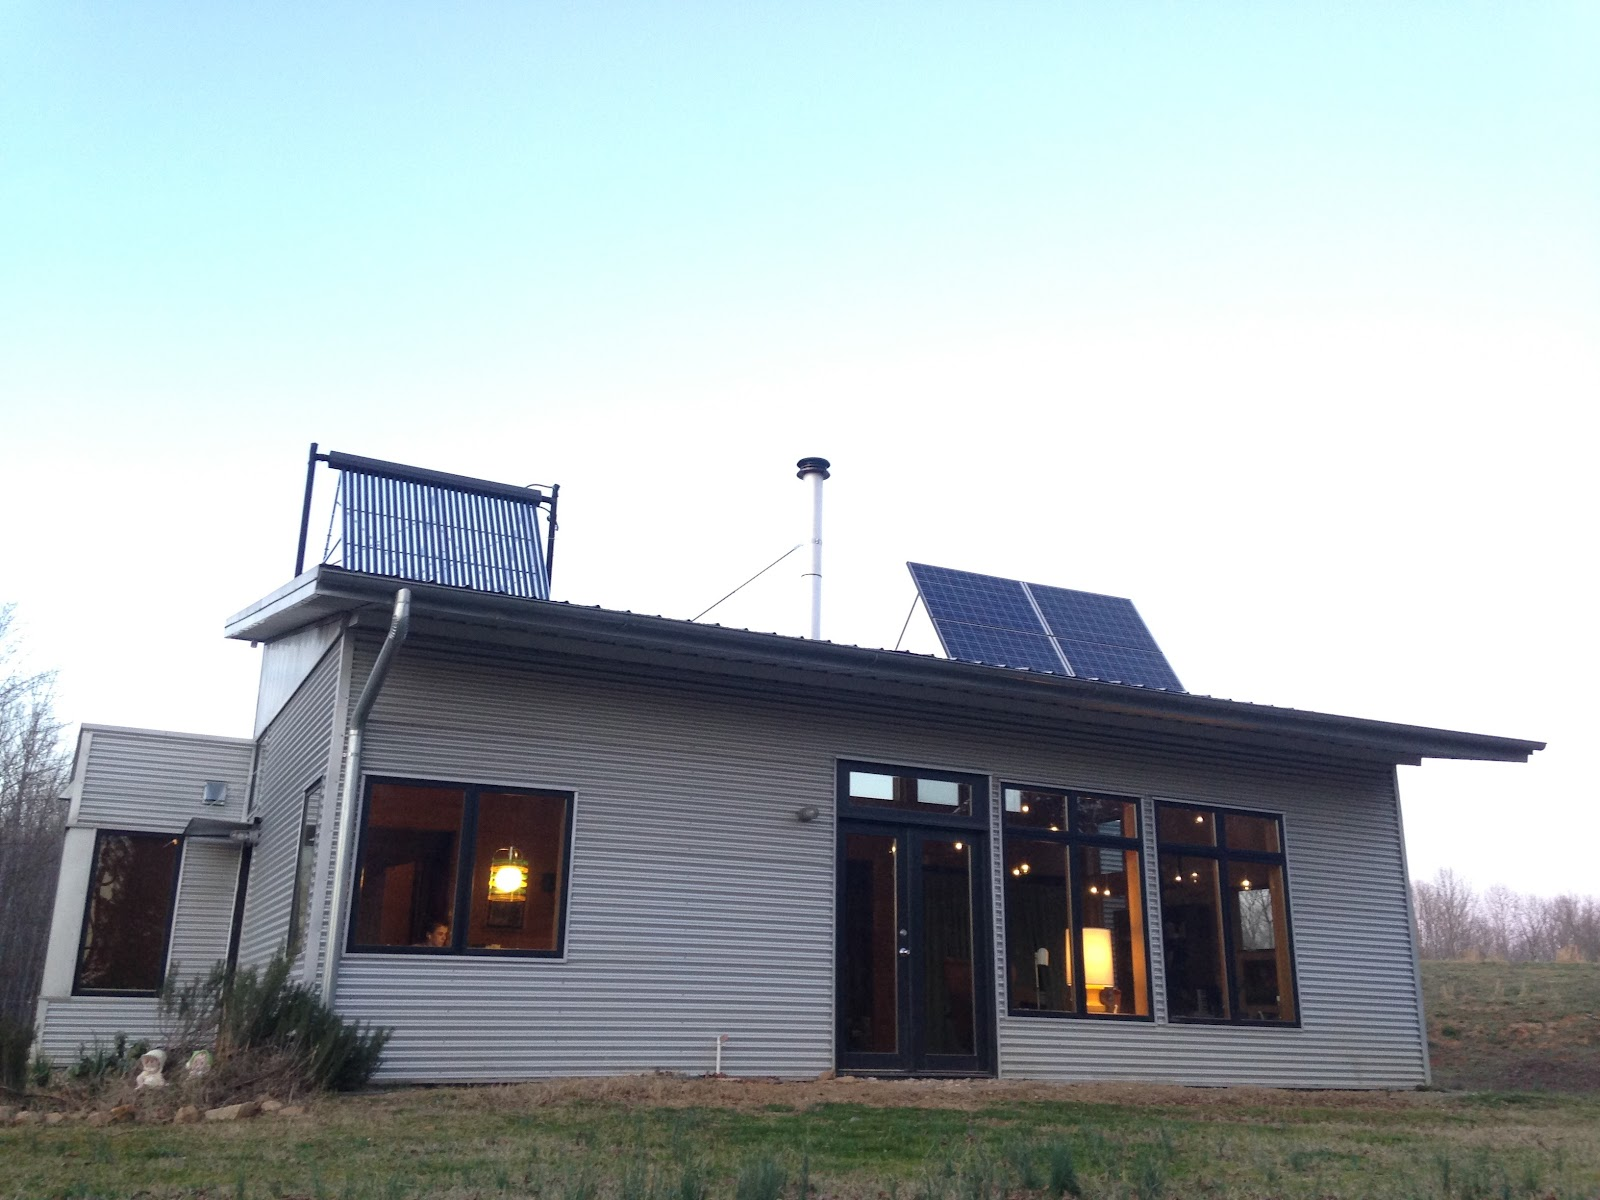 Passive solar prefab house gets a jump on spring projects for Passive solar prefab homes